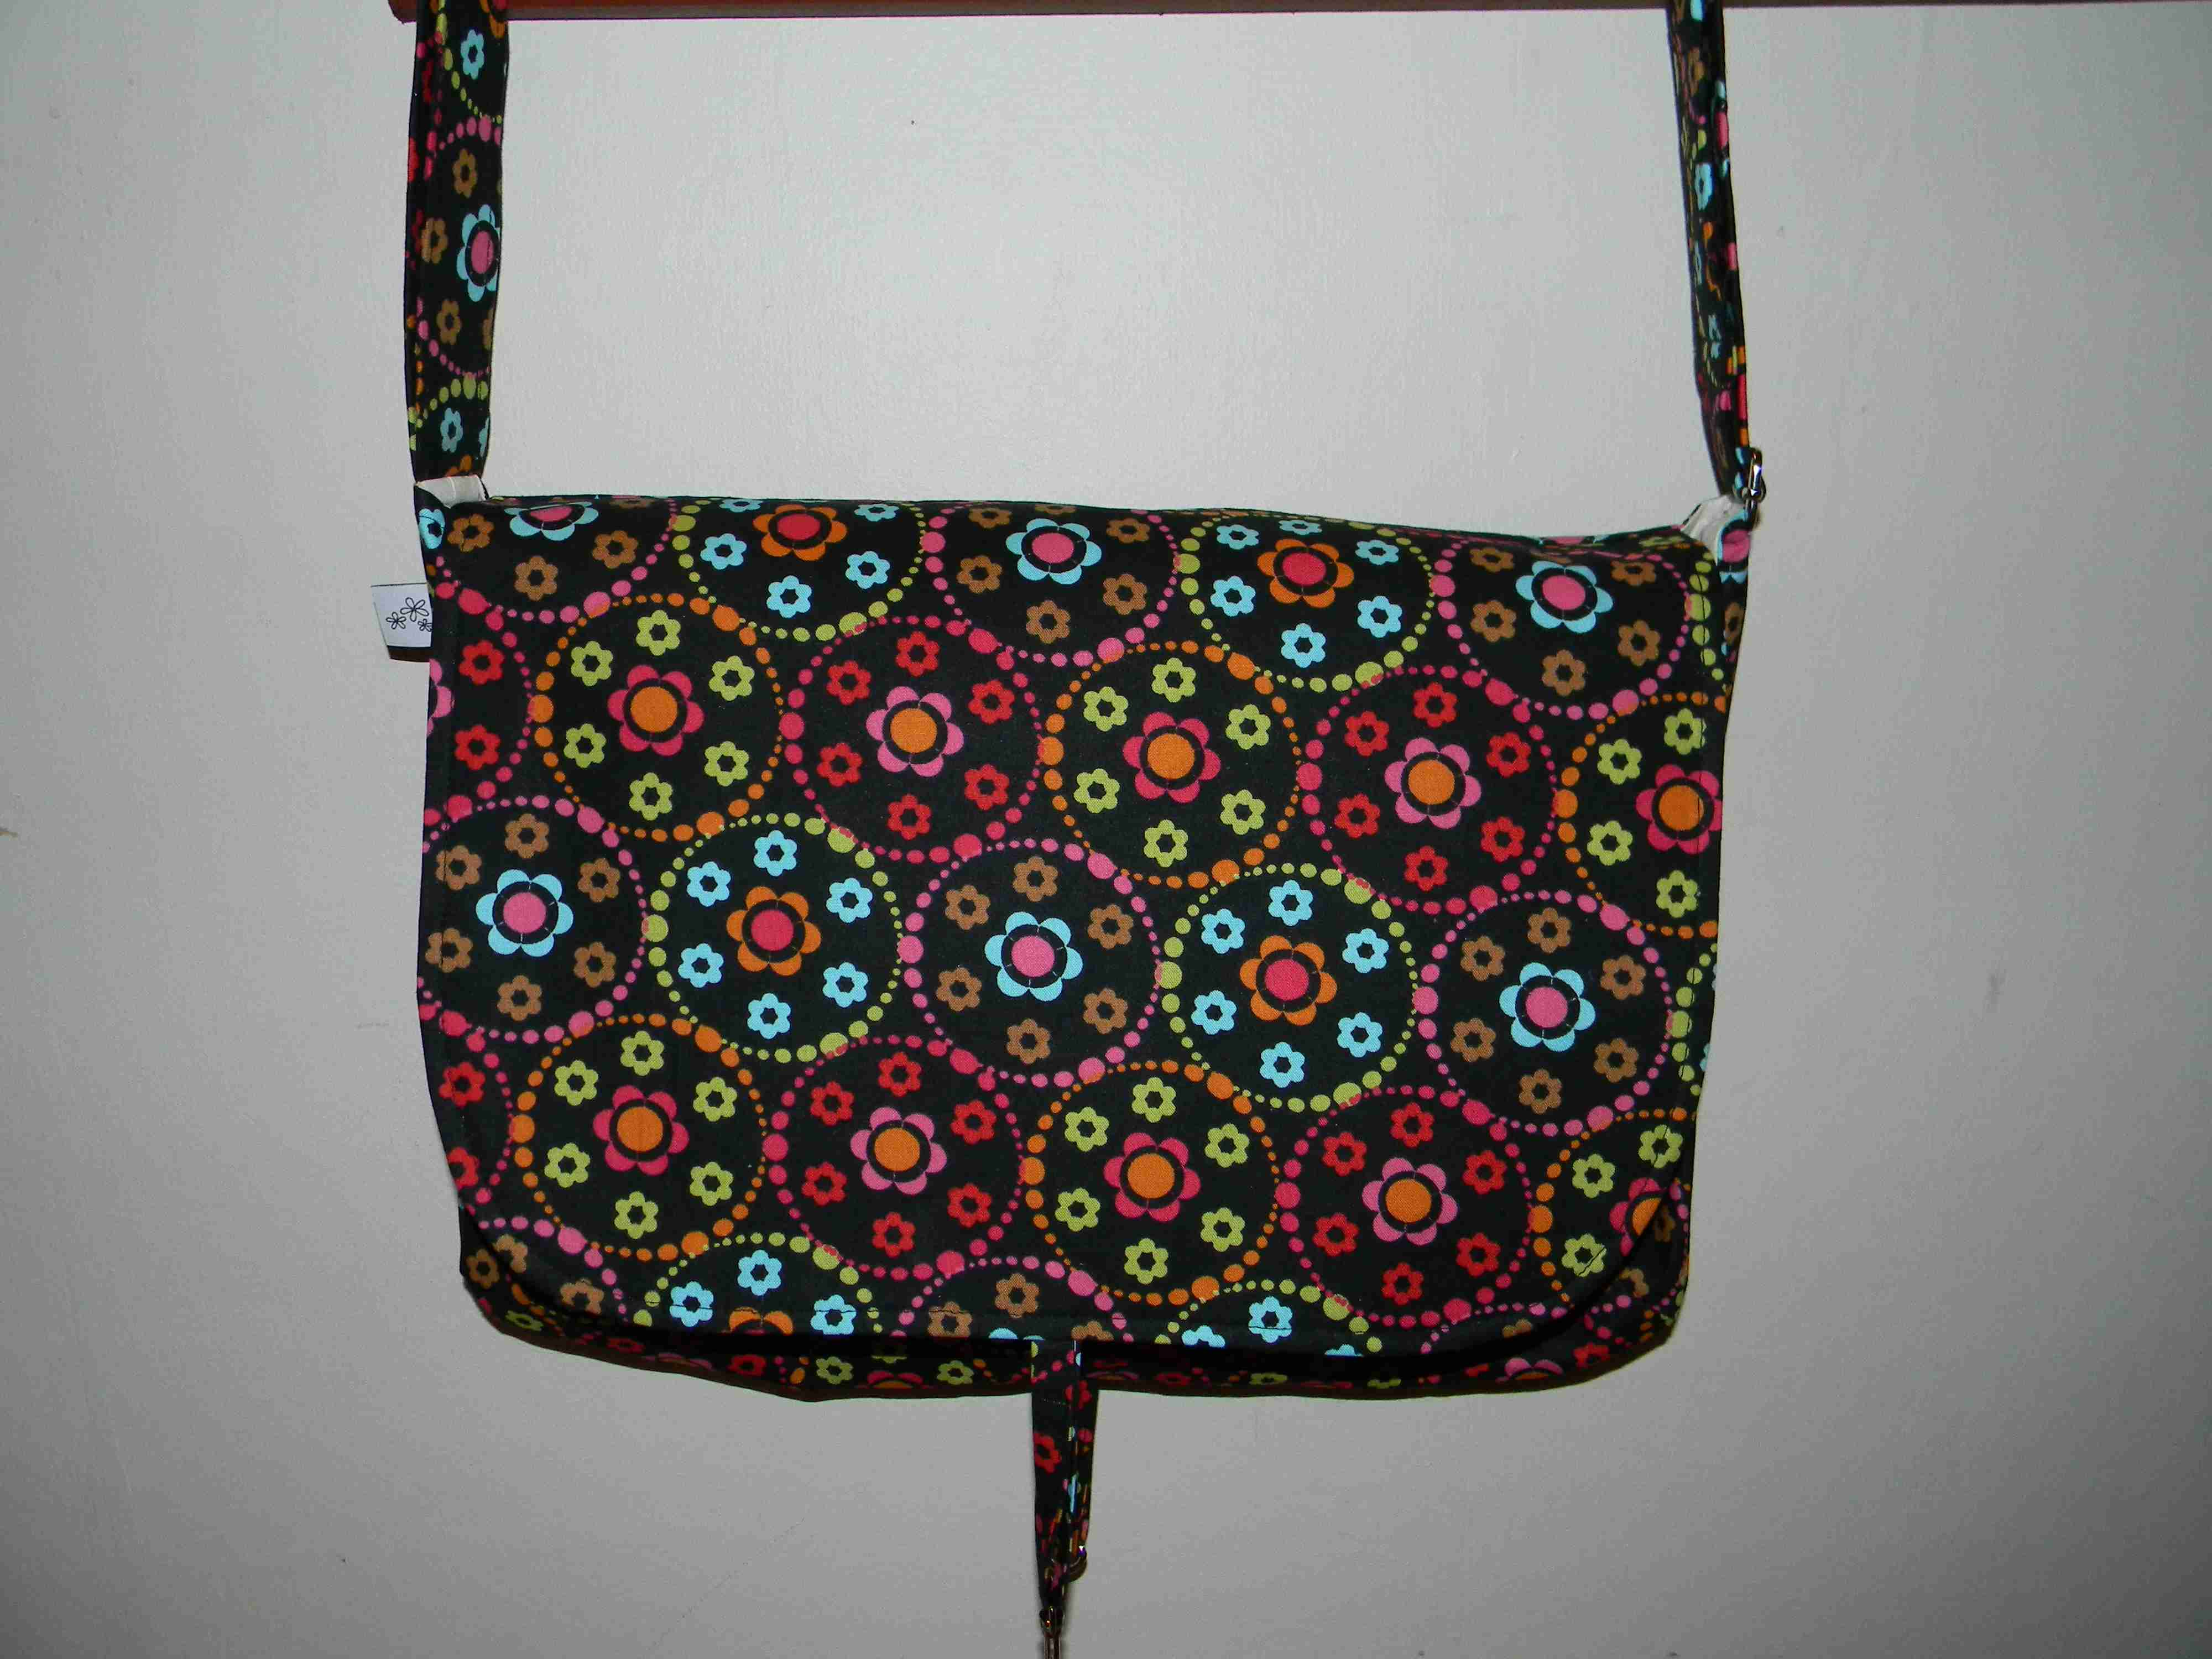 The Large Haley Messenger Bag